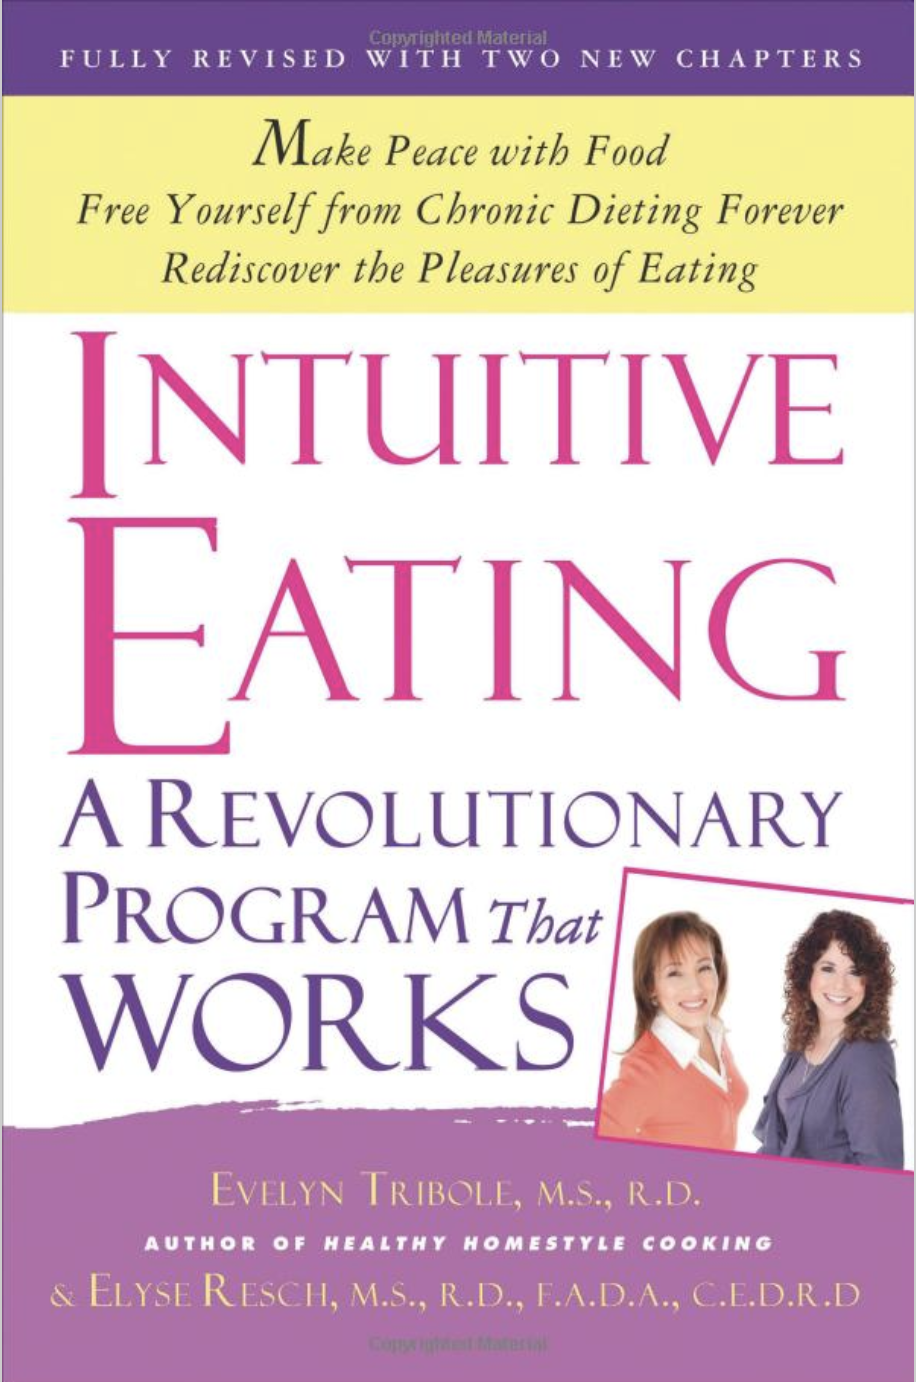 I incorporate many aspects of intuitive eating to my patient's guidelines. I found this book very helpful for my personal life and believe it to be a great resource for anyone looking to form better food relationships.